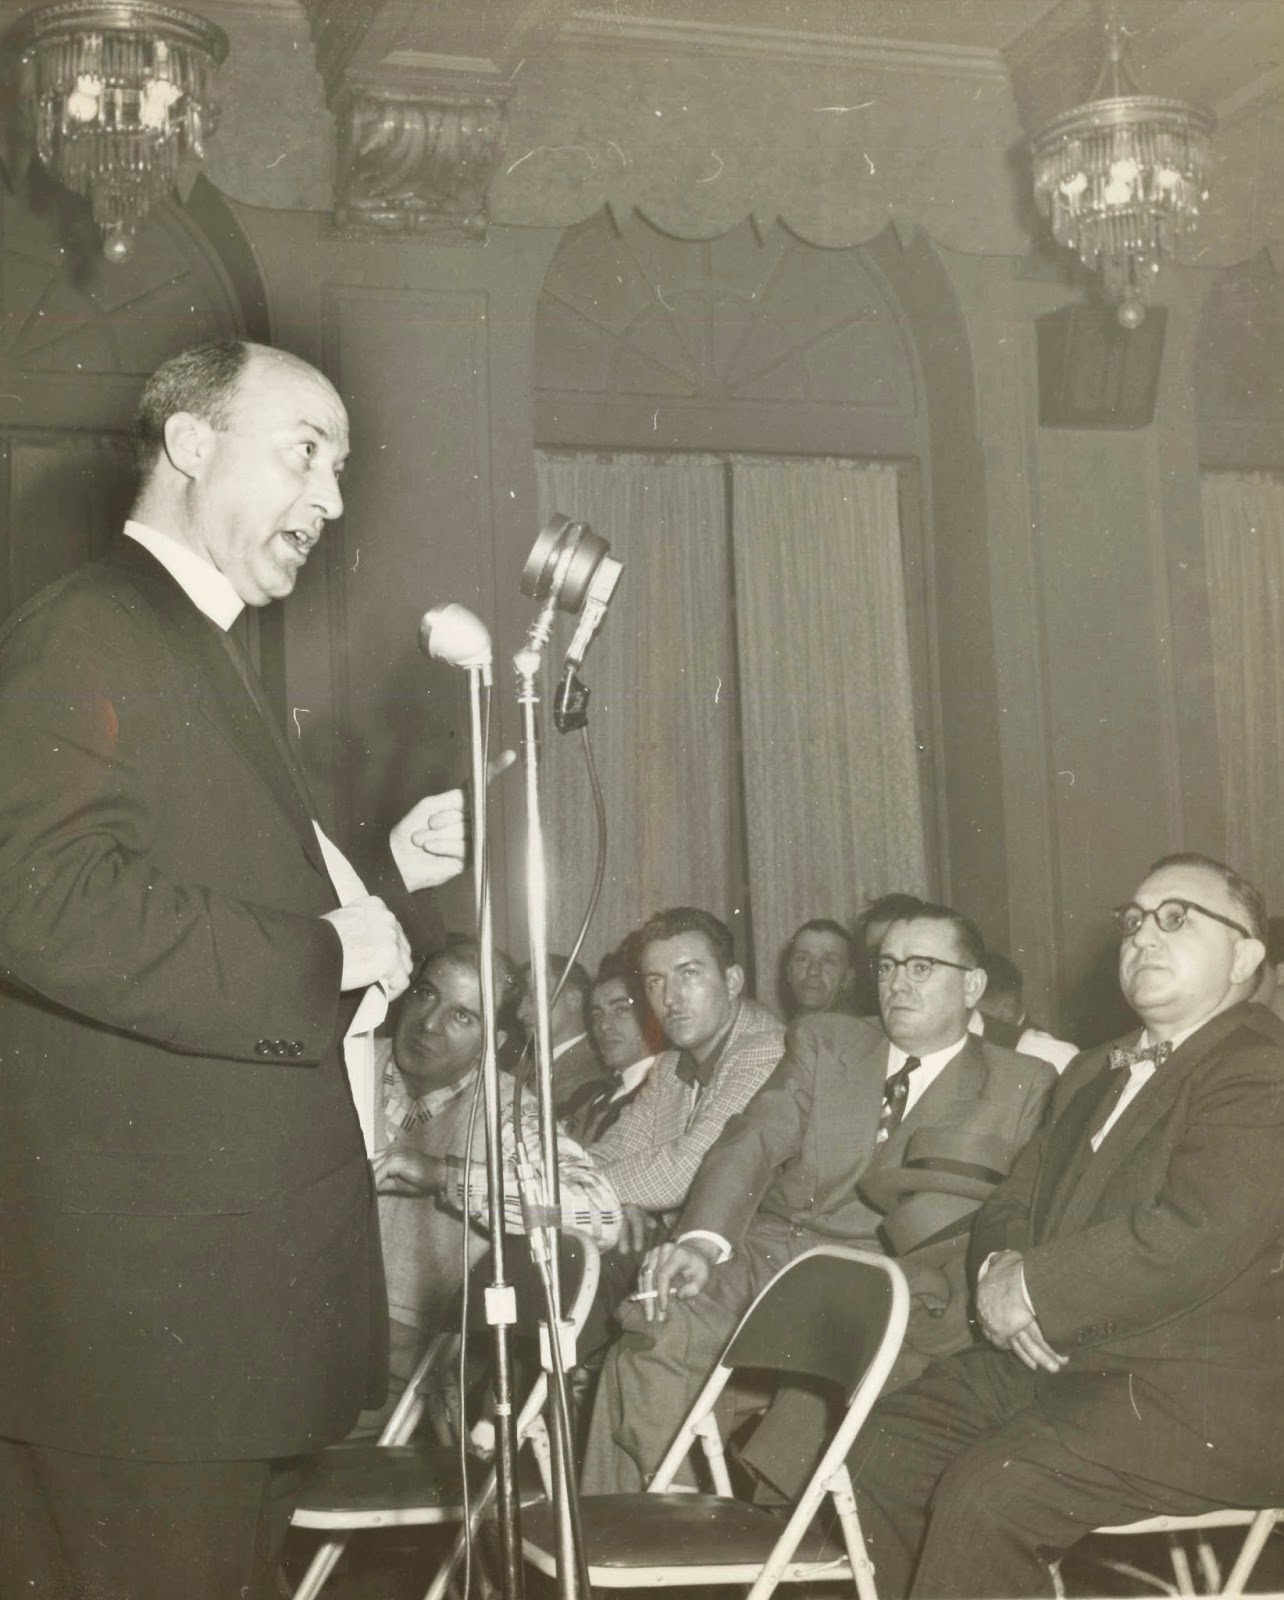 A black and white photograph of a man in a priest's collar speaking into a microphone in front of a crowd of seated men in suits.